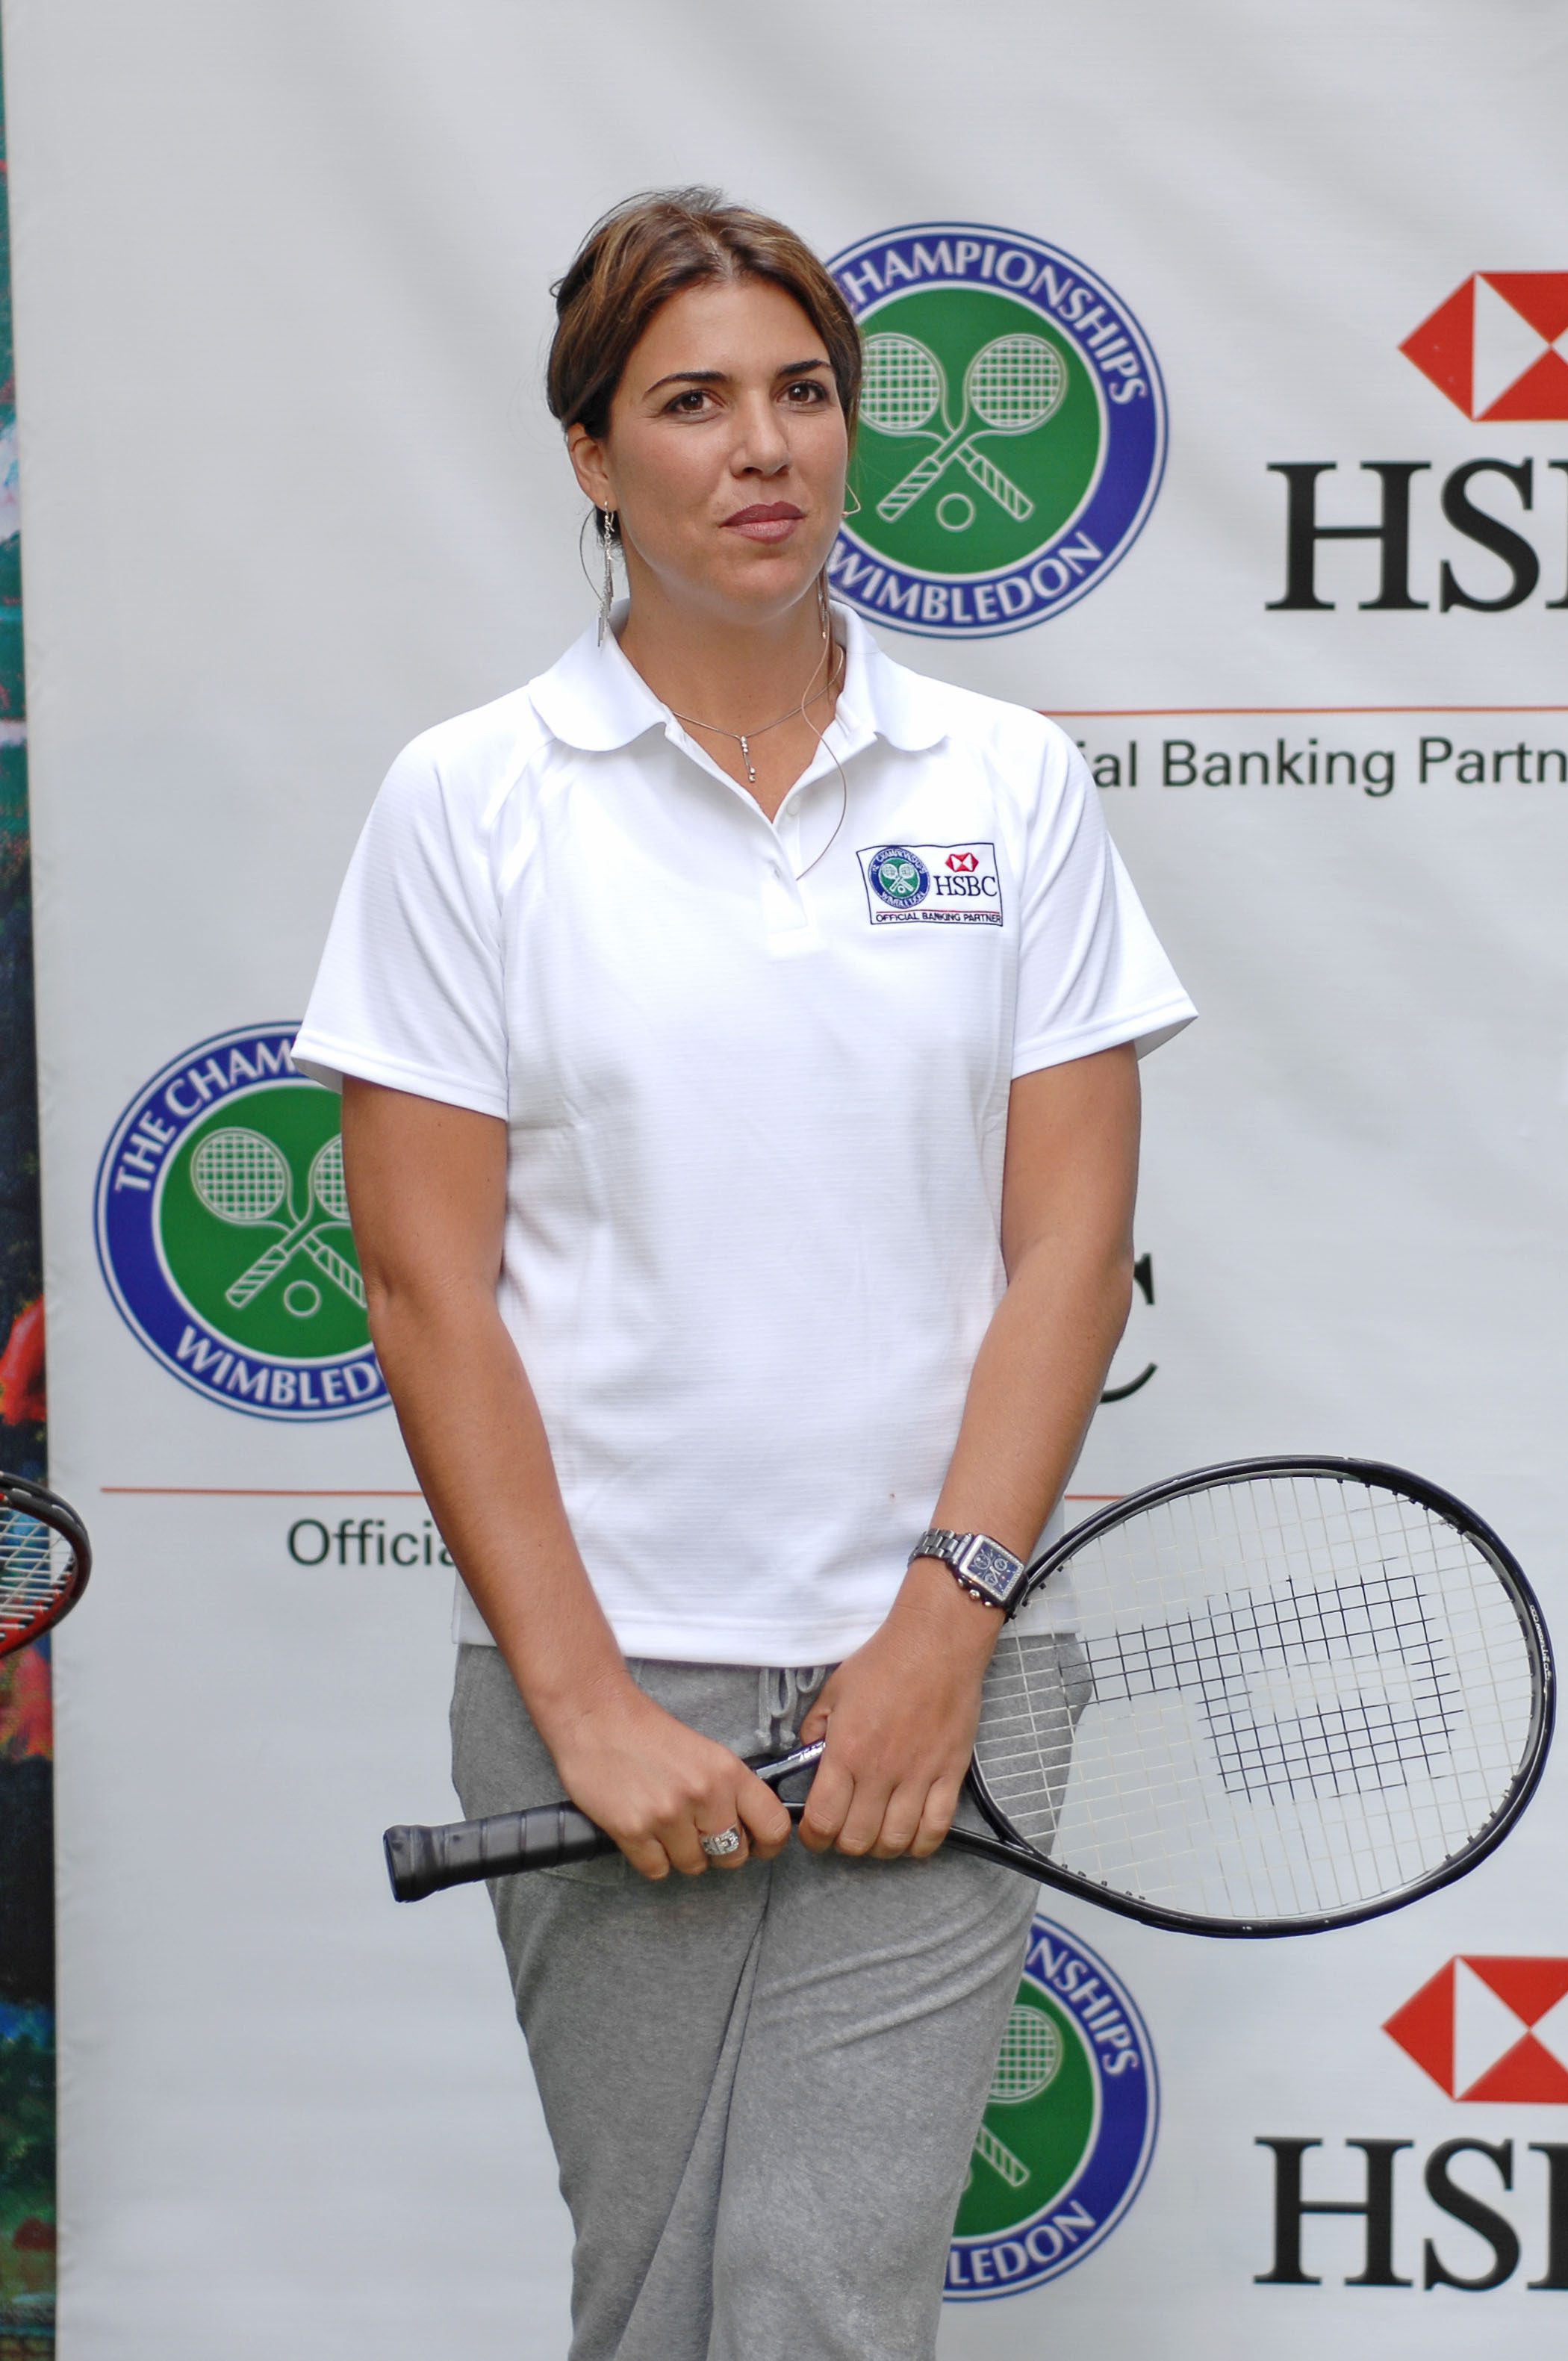 Jennifer Capriati shoplift